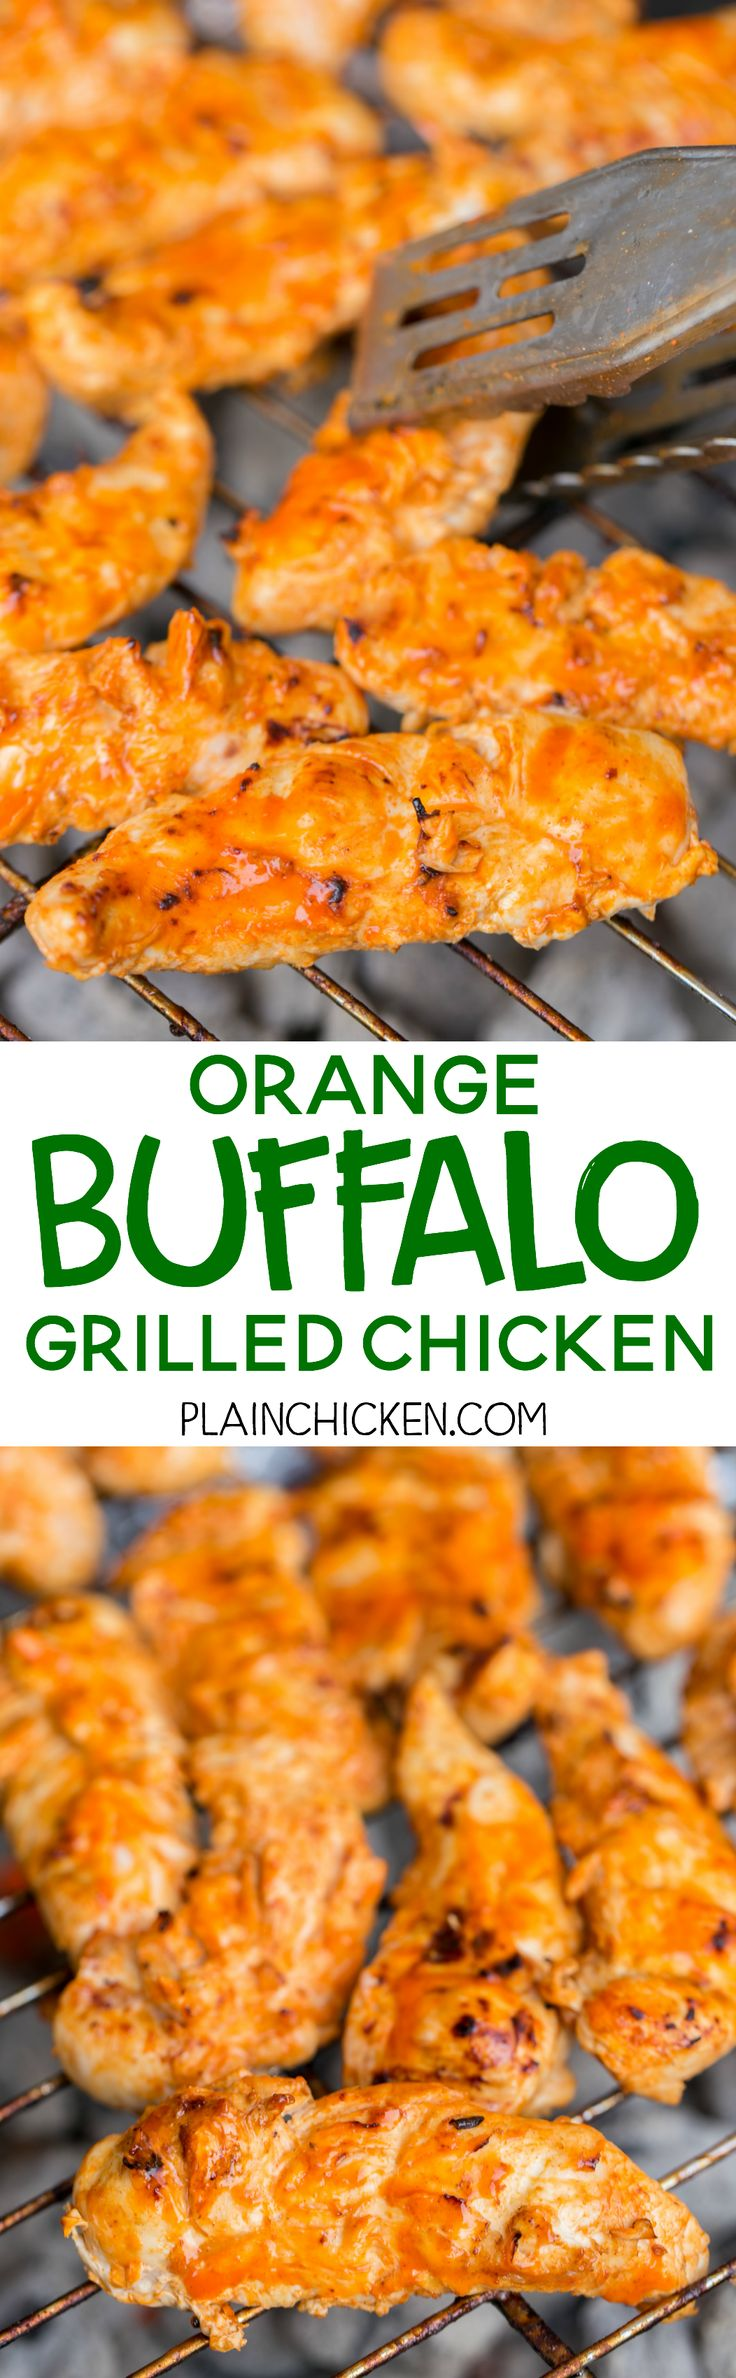 Orange Buffalo Grilled Chicken - chicken marinated in buffalo sauce and orange juice - grill, pan sear or bake for a quick weeknight meal. A little spicy, a little sweet and a whole lotta delicious! Ready to eat in 15 minutes!